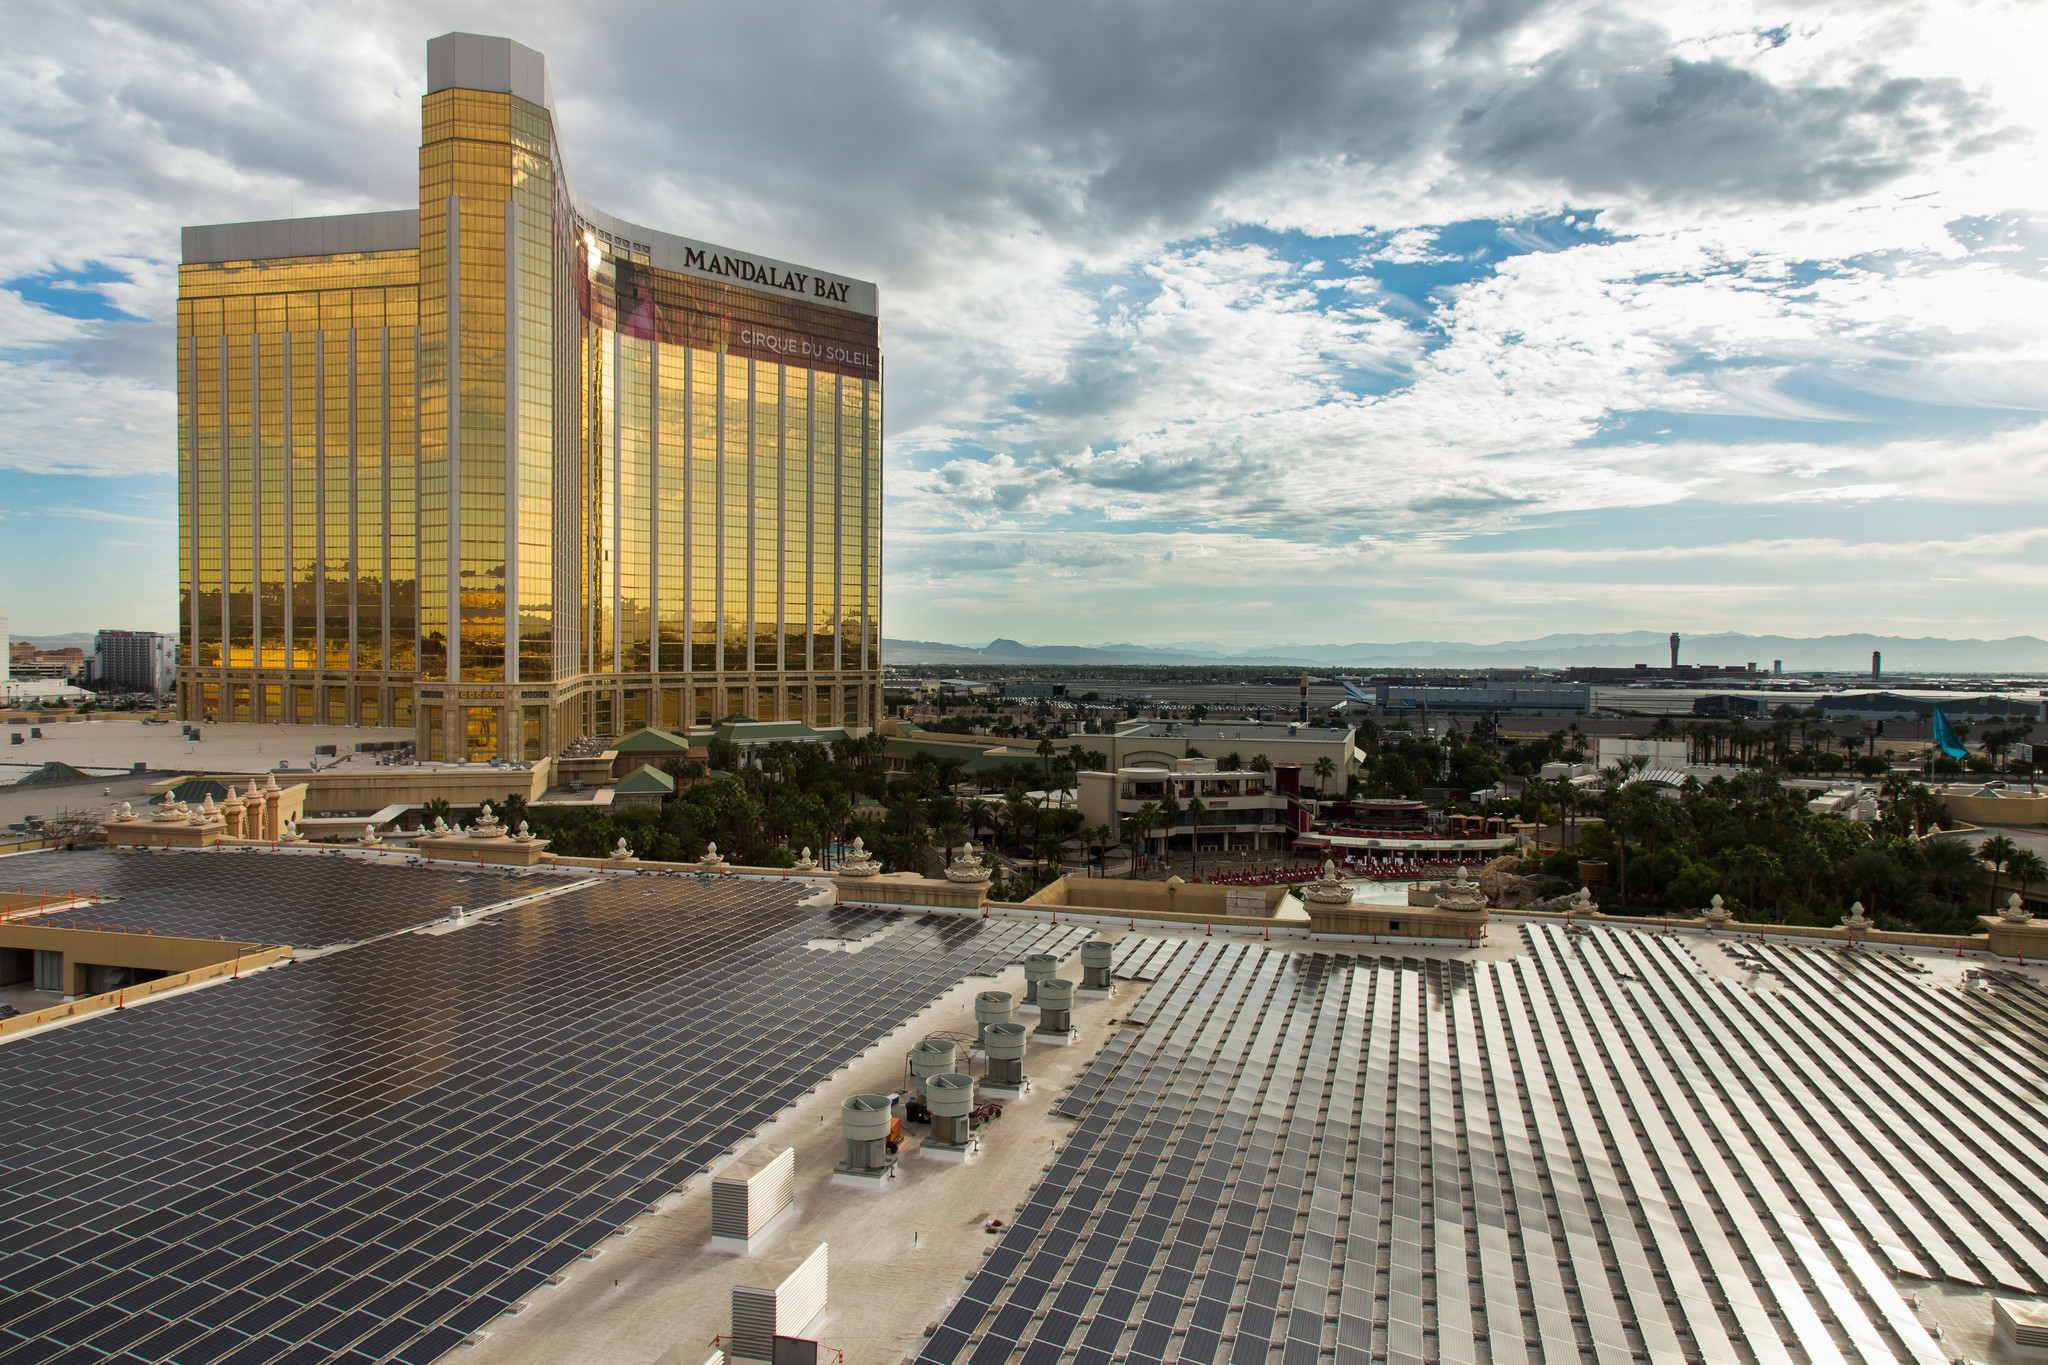 Mandalay Bay's convention center unveils 350,000-square-foot expansion - LA Times